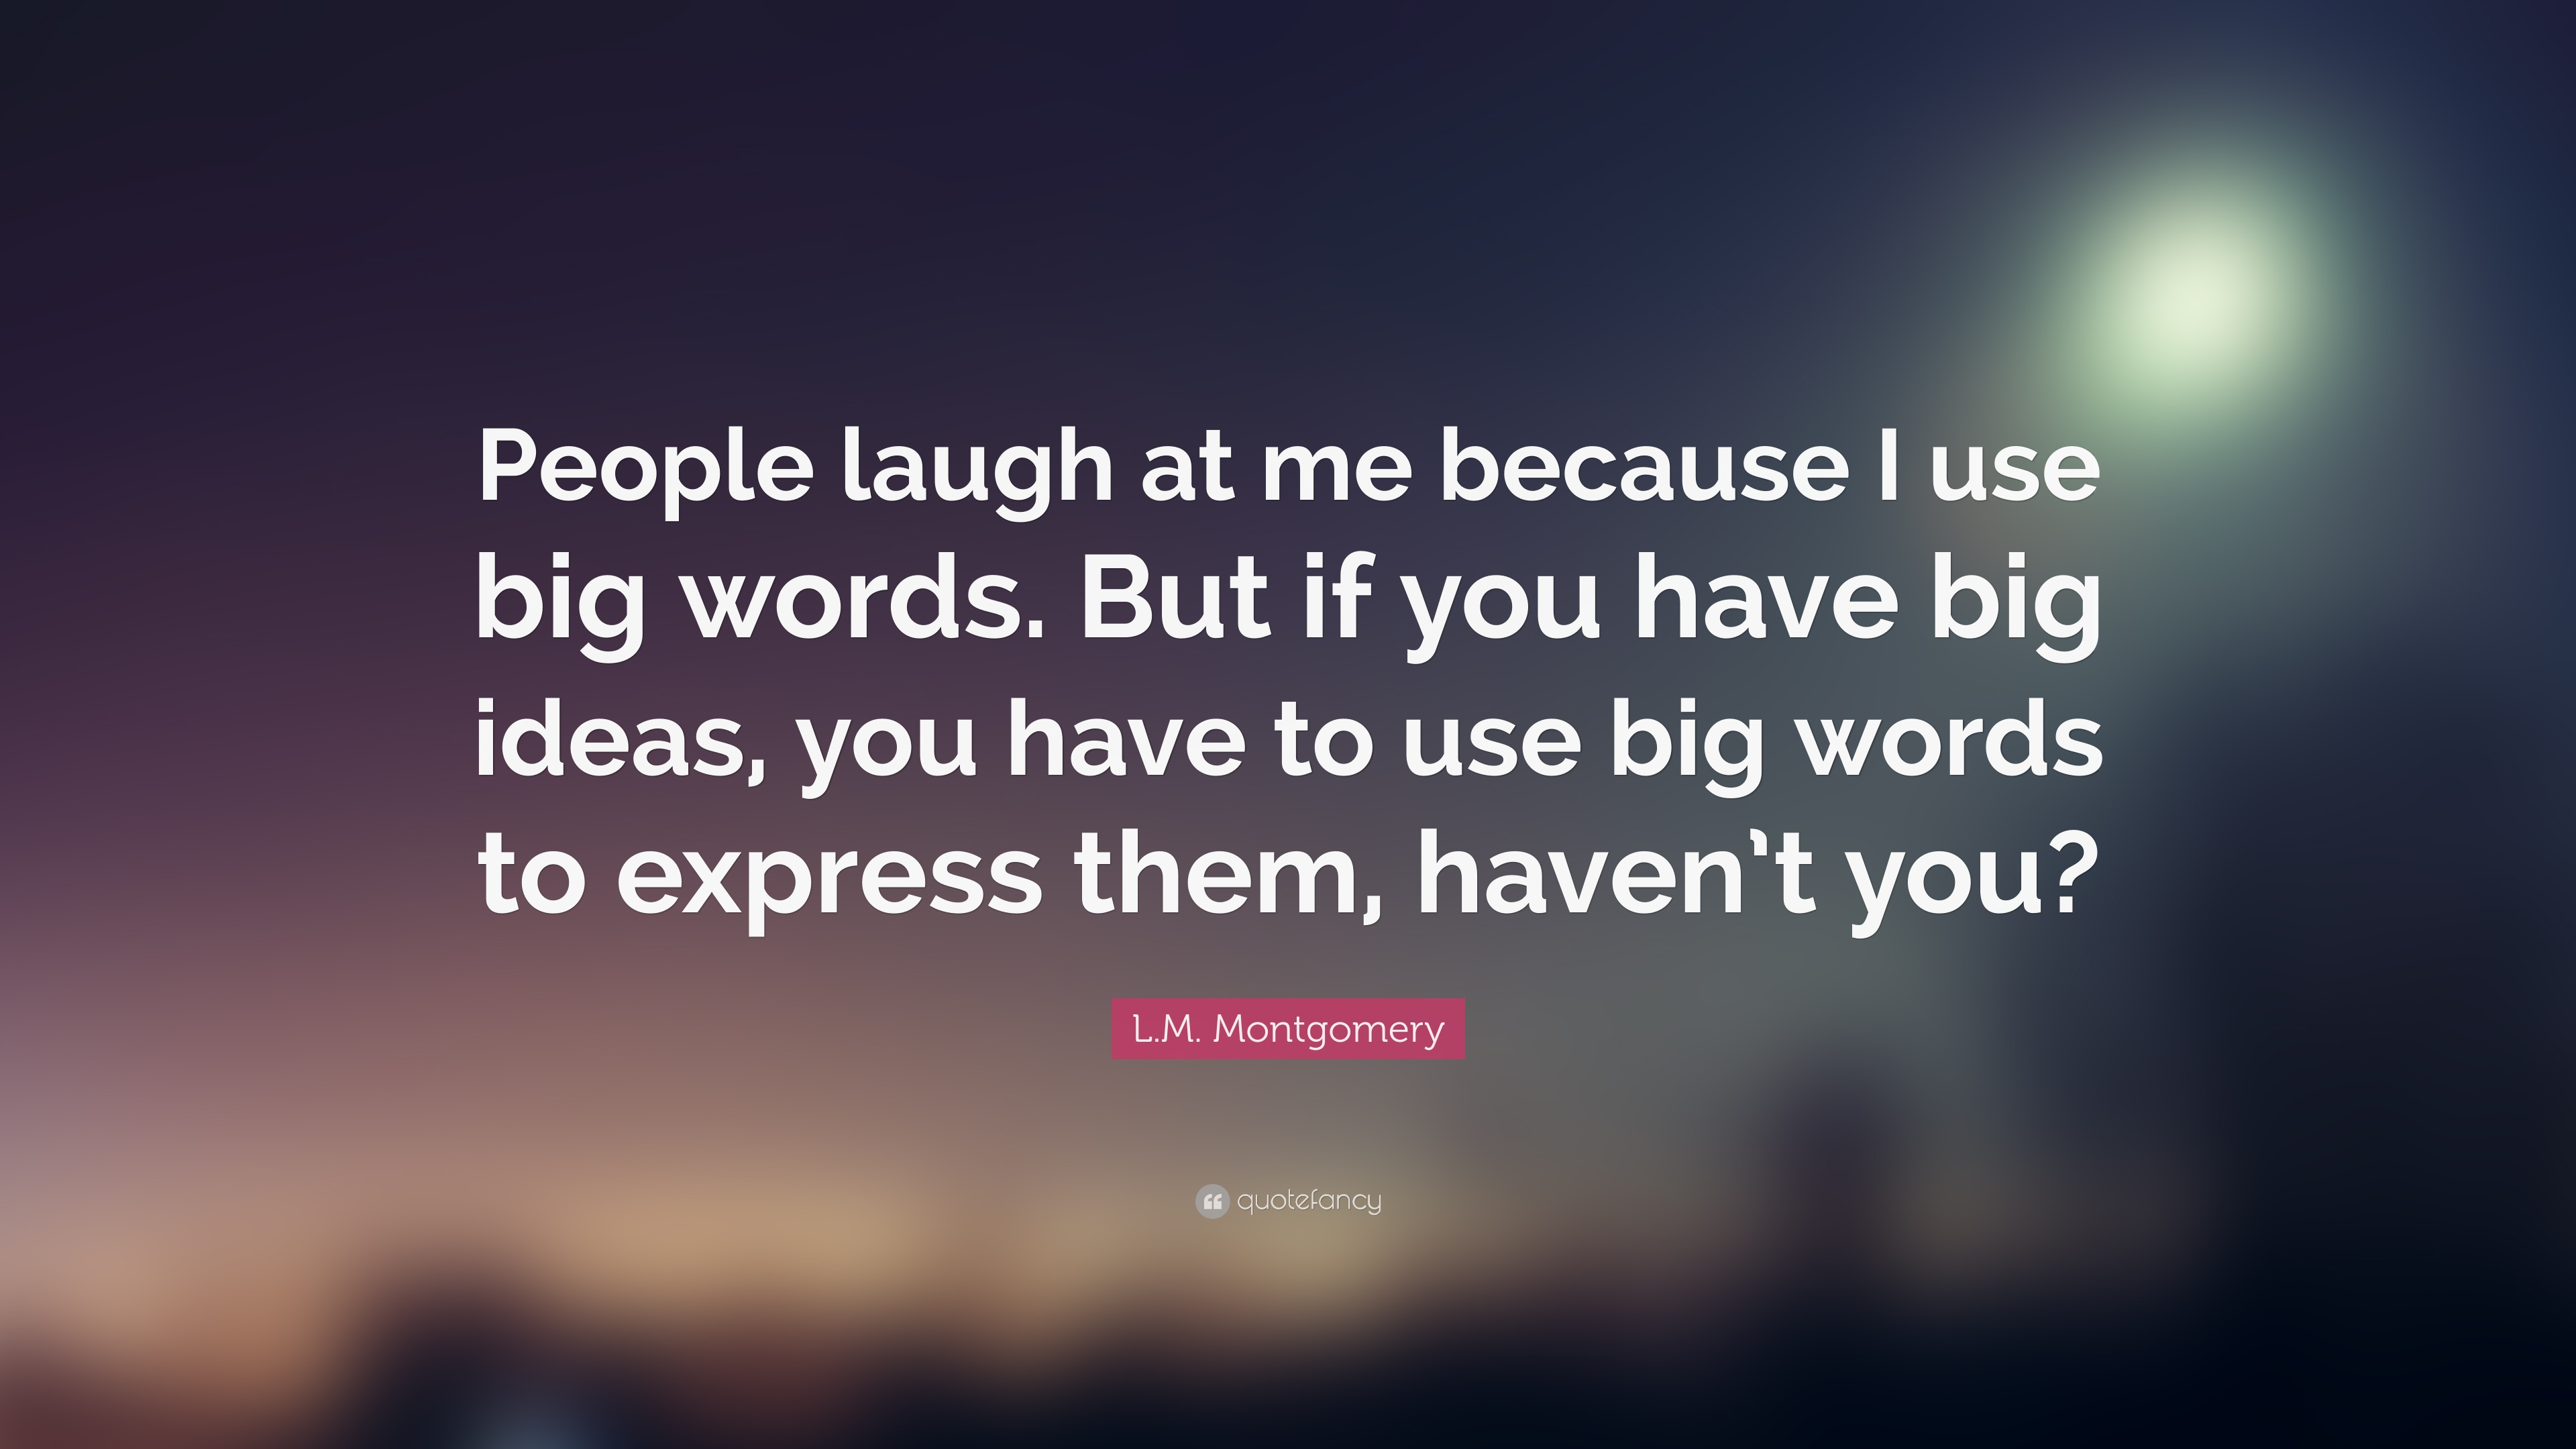 Lm Montgomery Quote People Laugh At Me Because I Use Big Words